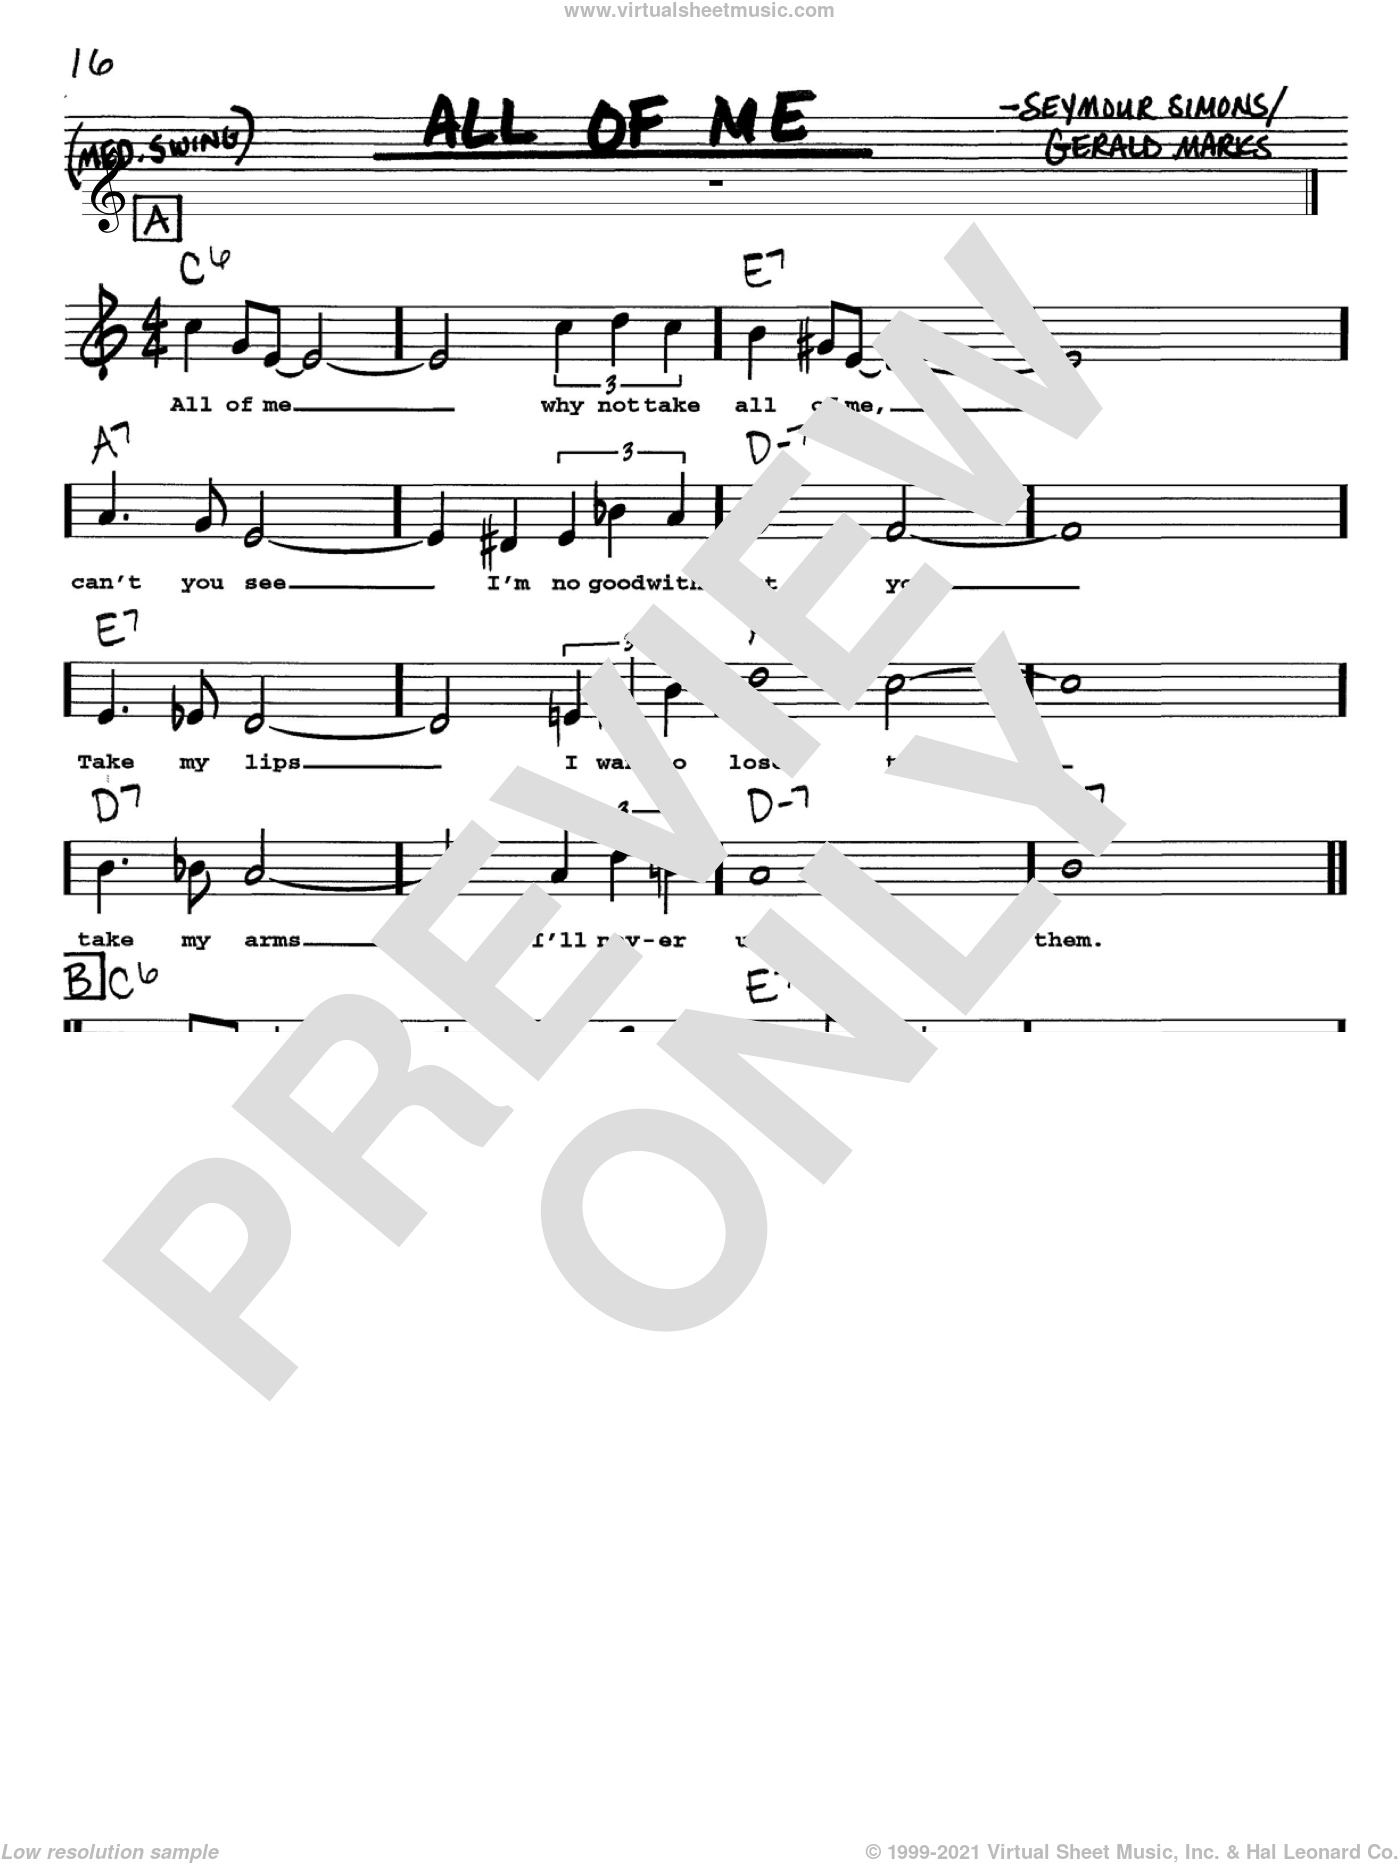 All Of Me sheet music for voice and other instruments  by Louis Armstrong, Frank Sinatra, Willie Nelson, Gerald Marks and Seymour Simons, intermediate skill level